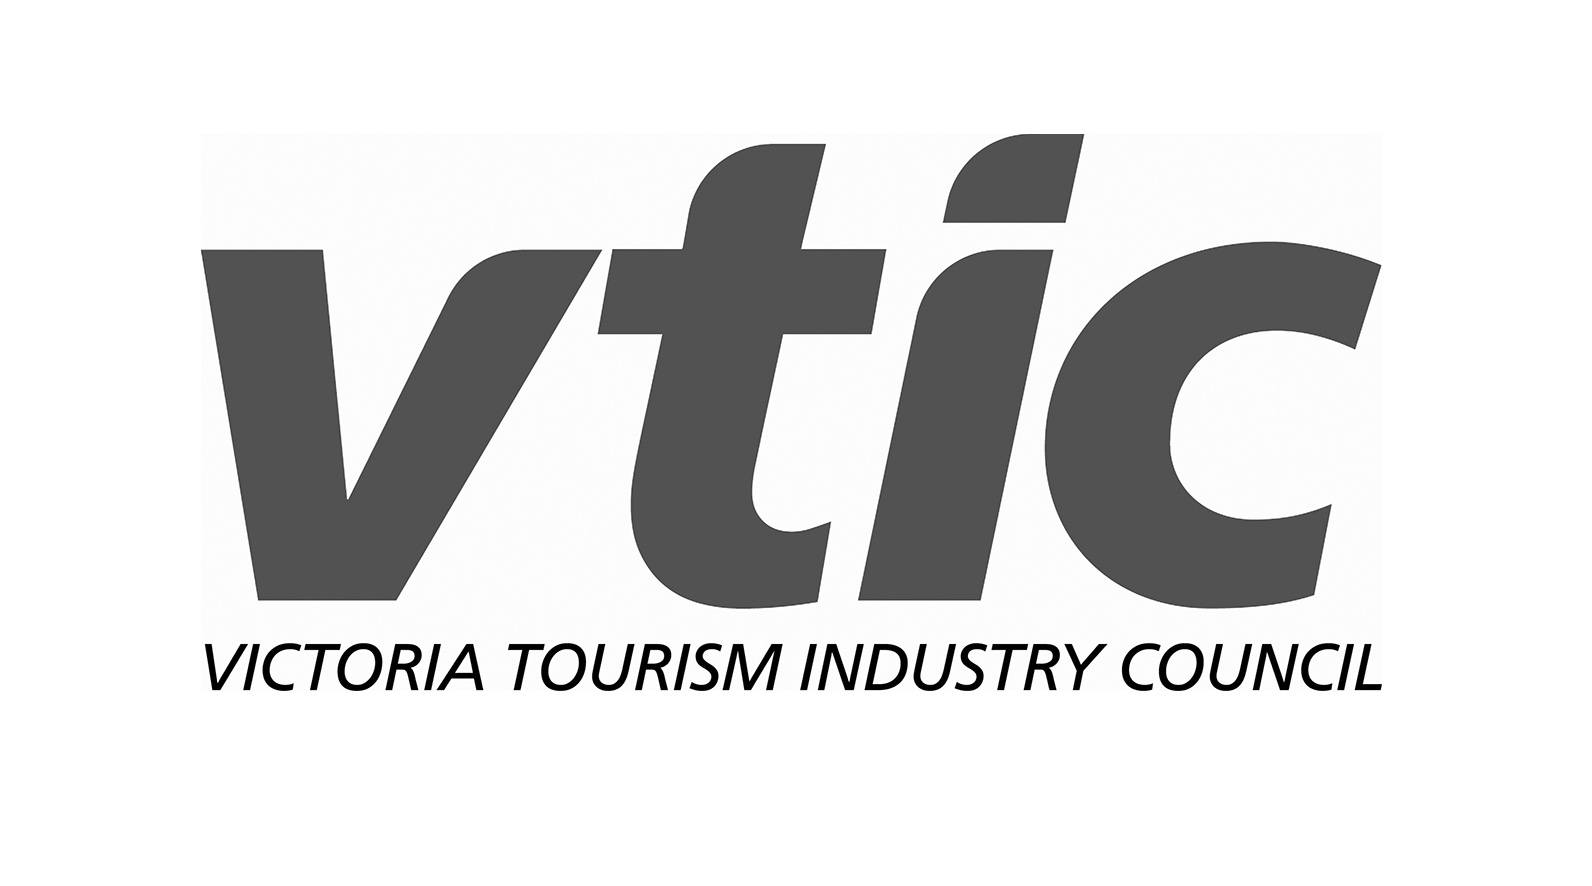 Victoria Tourism Industry Council